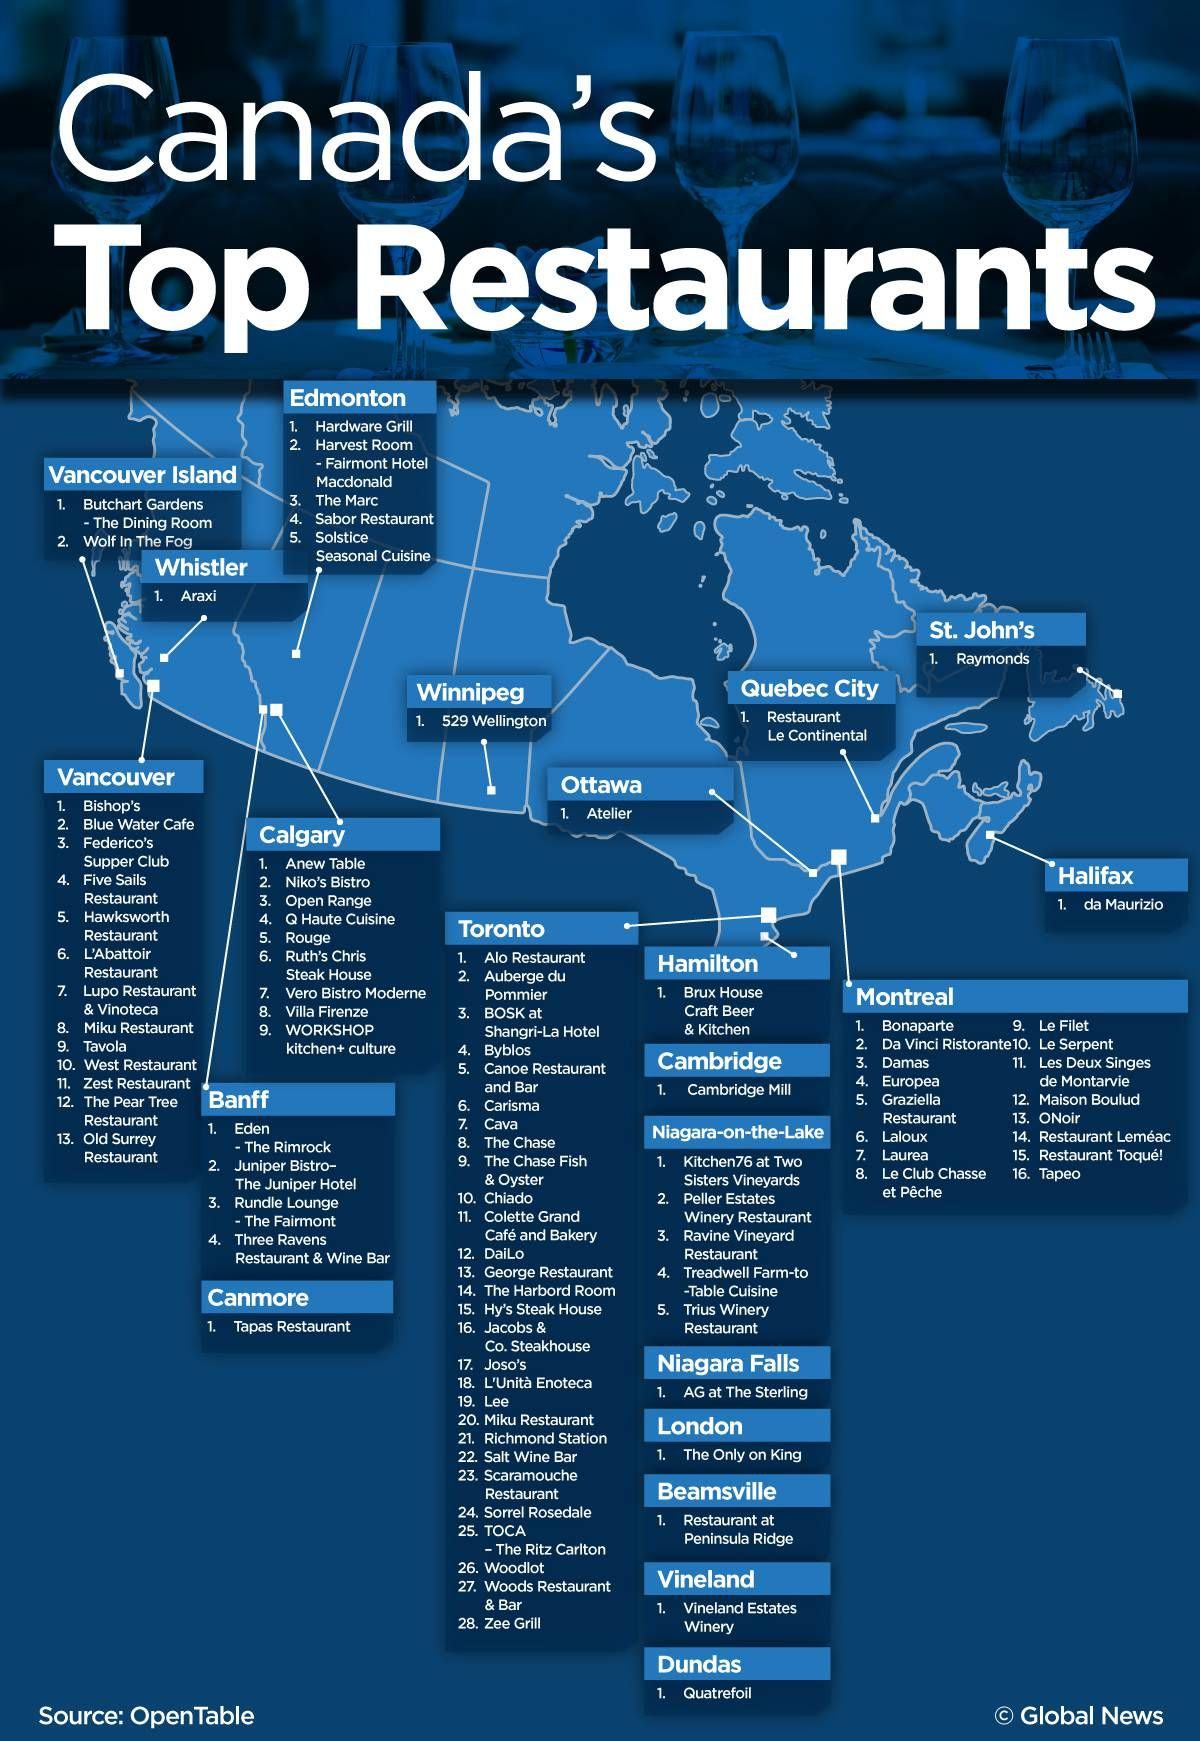 You Now Have A New List To Consult When Choosing Where Dine Out And Once Again Toronto S Restaurant Scene Comes On Top